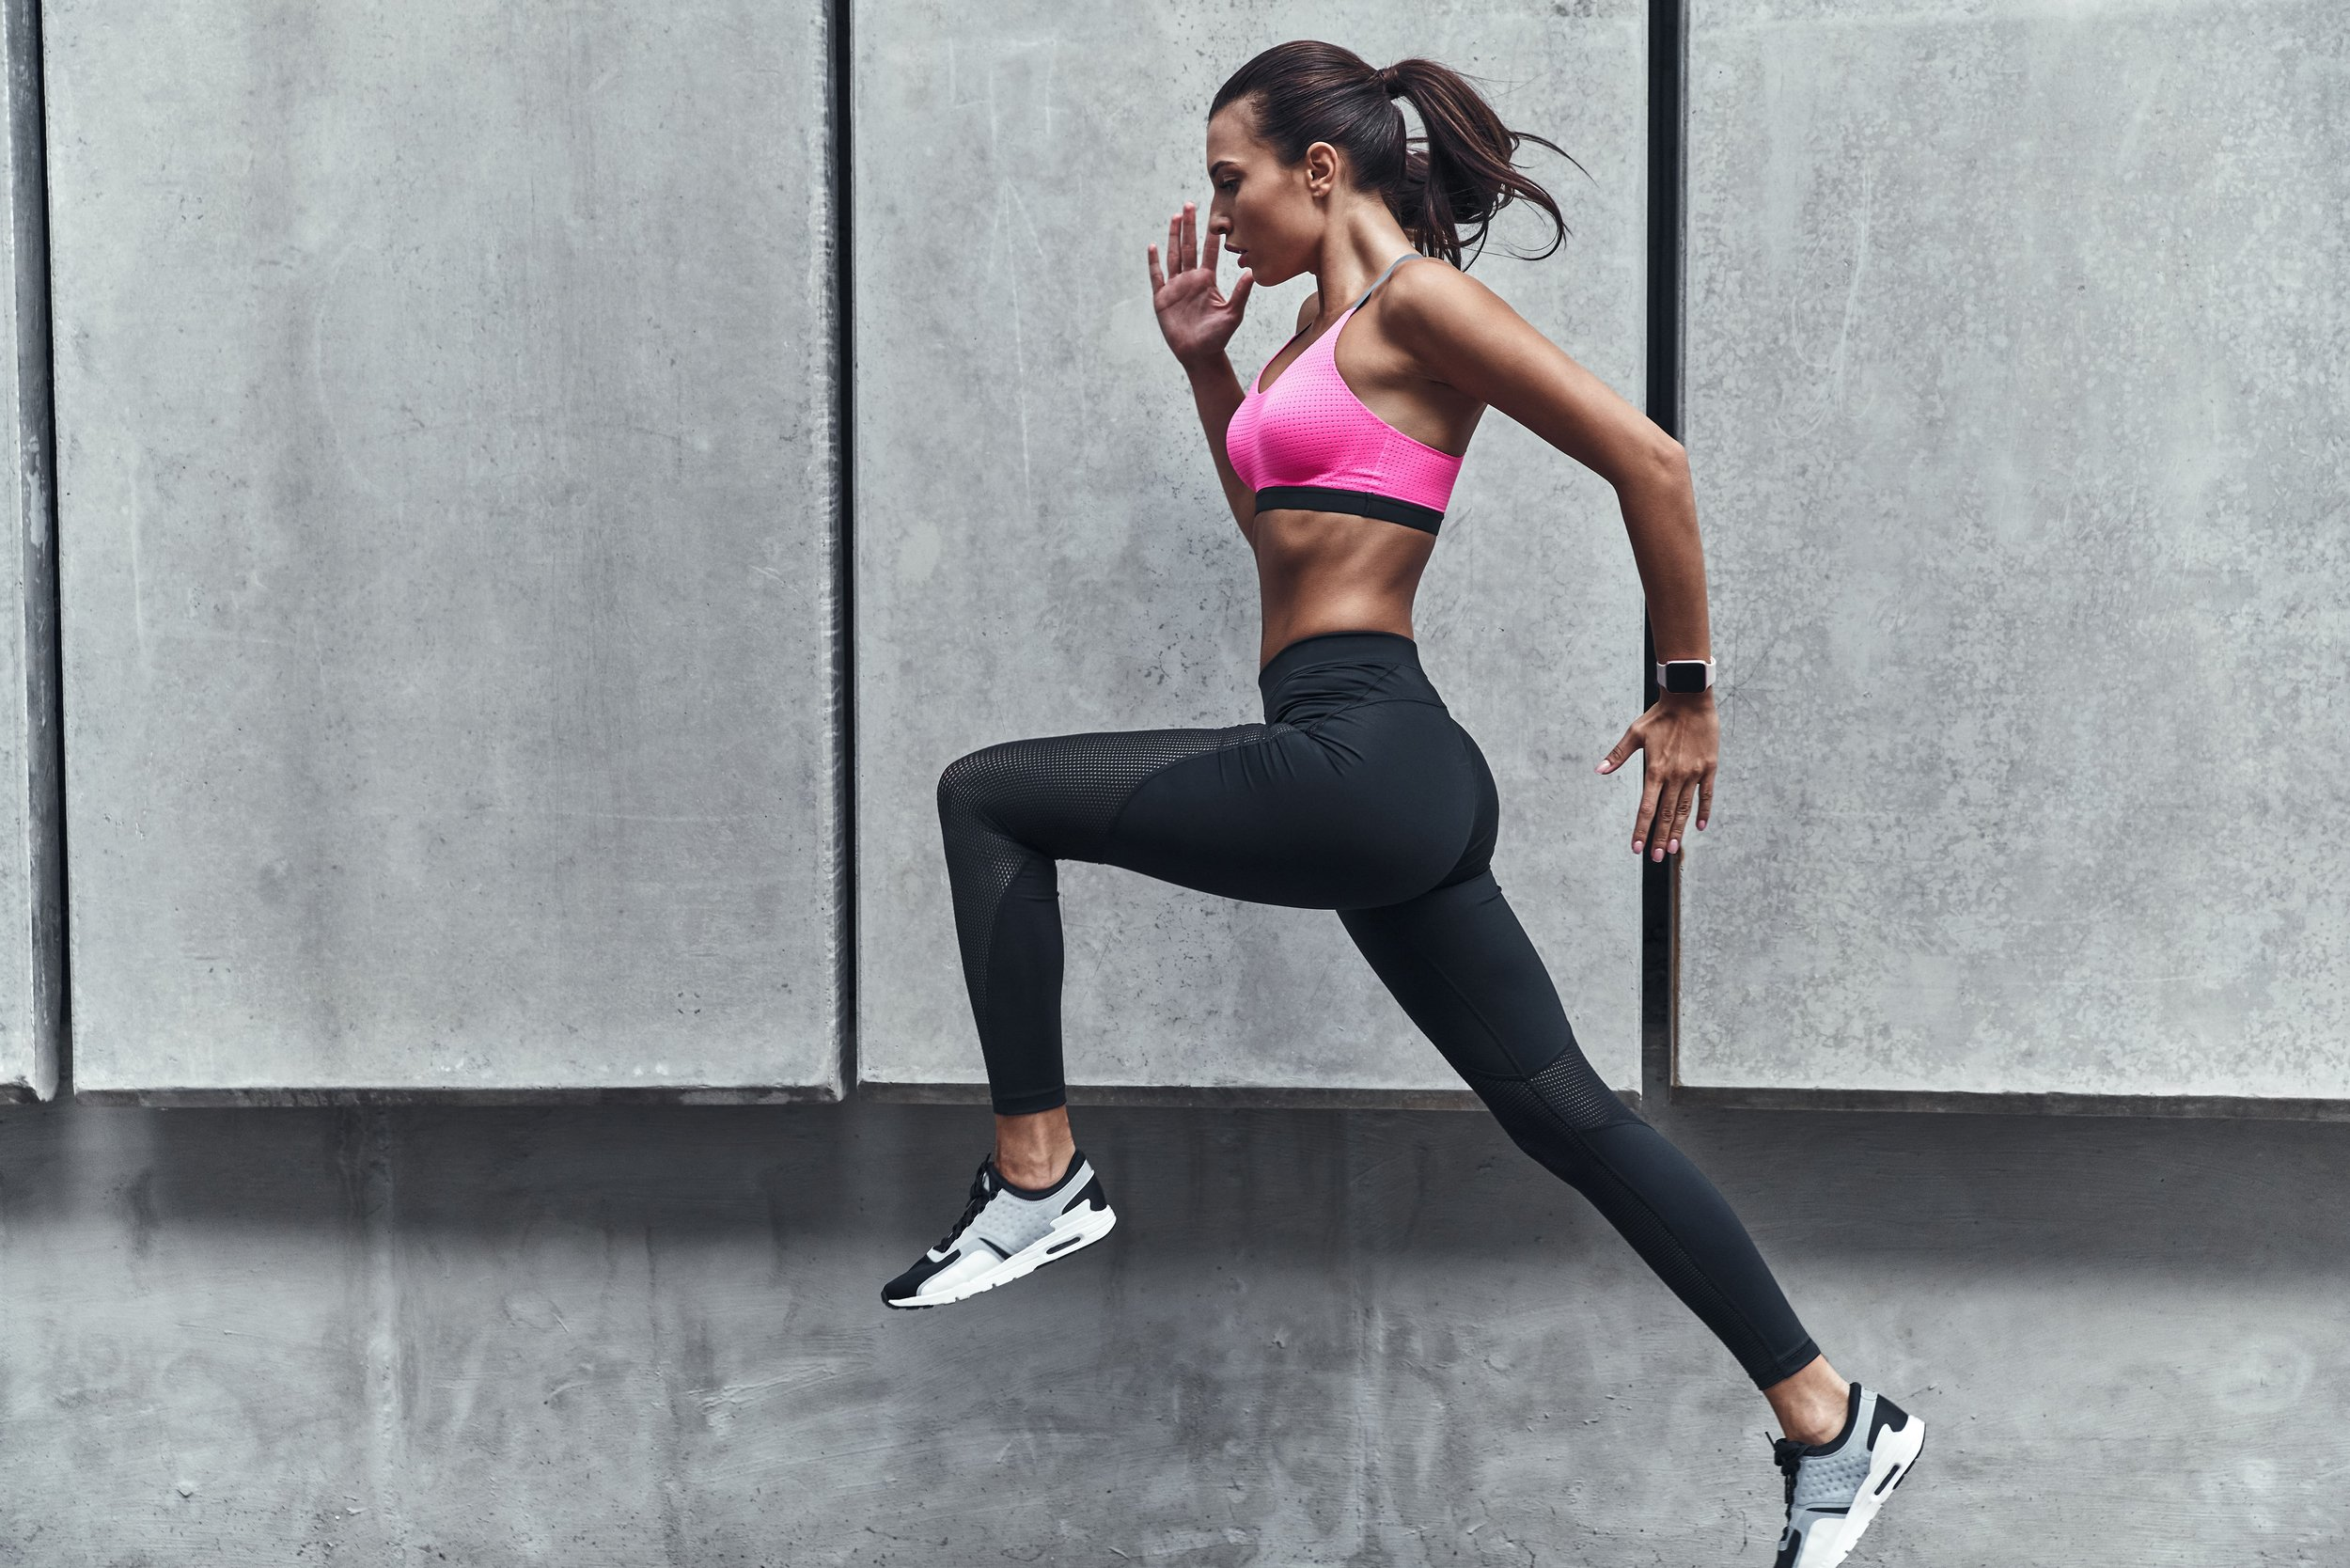 Female sportswear for running